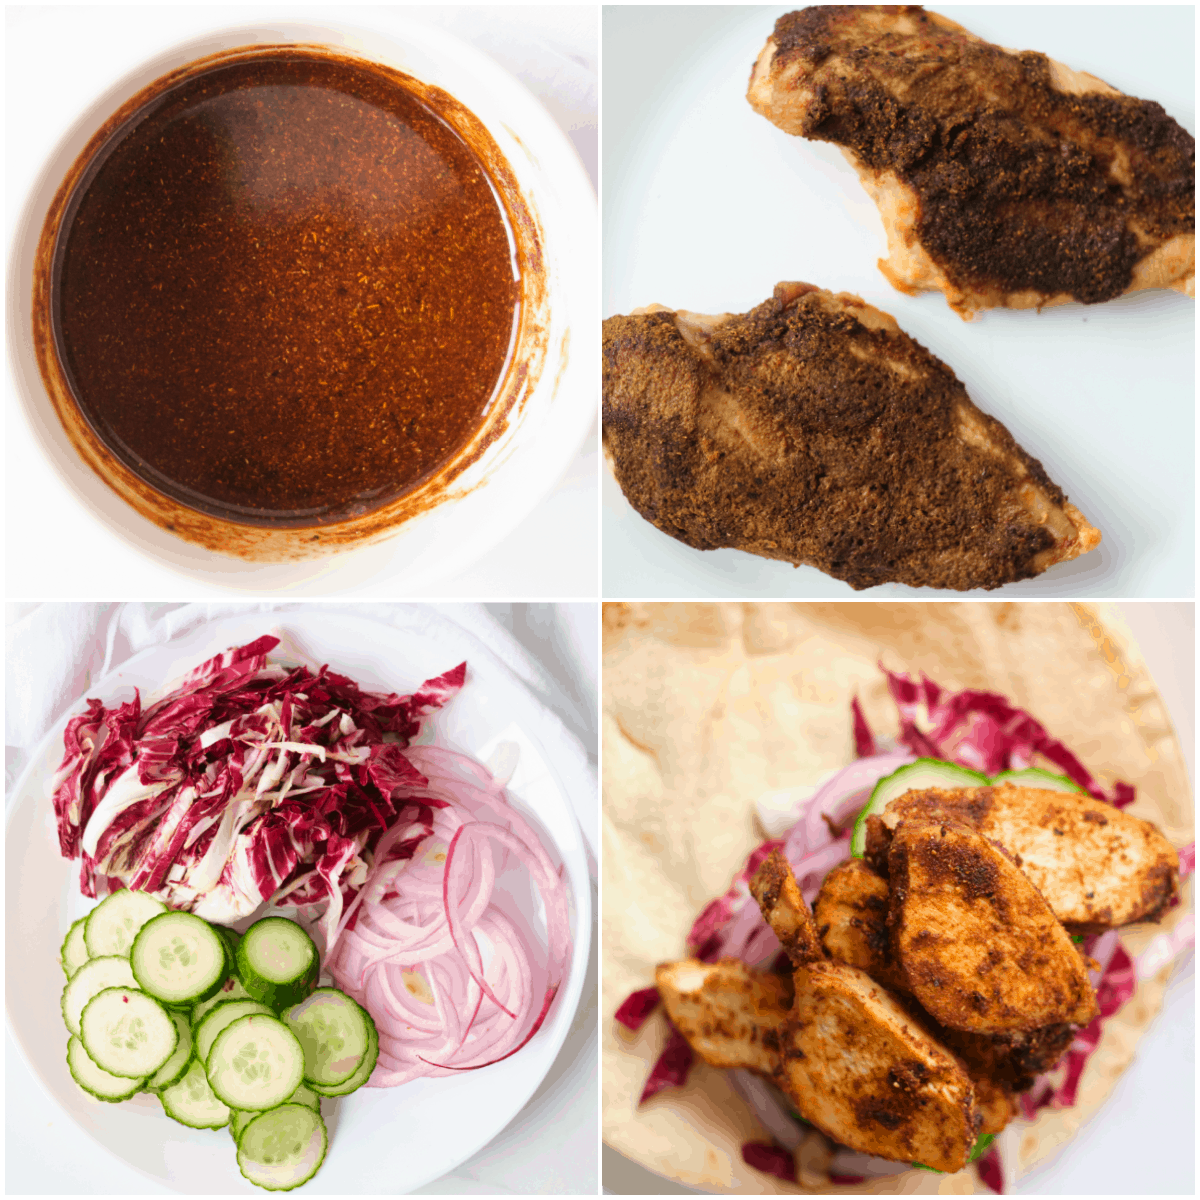 image collage showing the steps for making chicken shawarma wrap